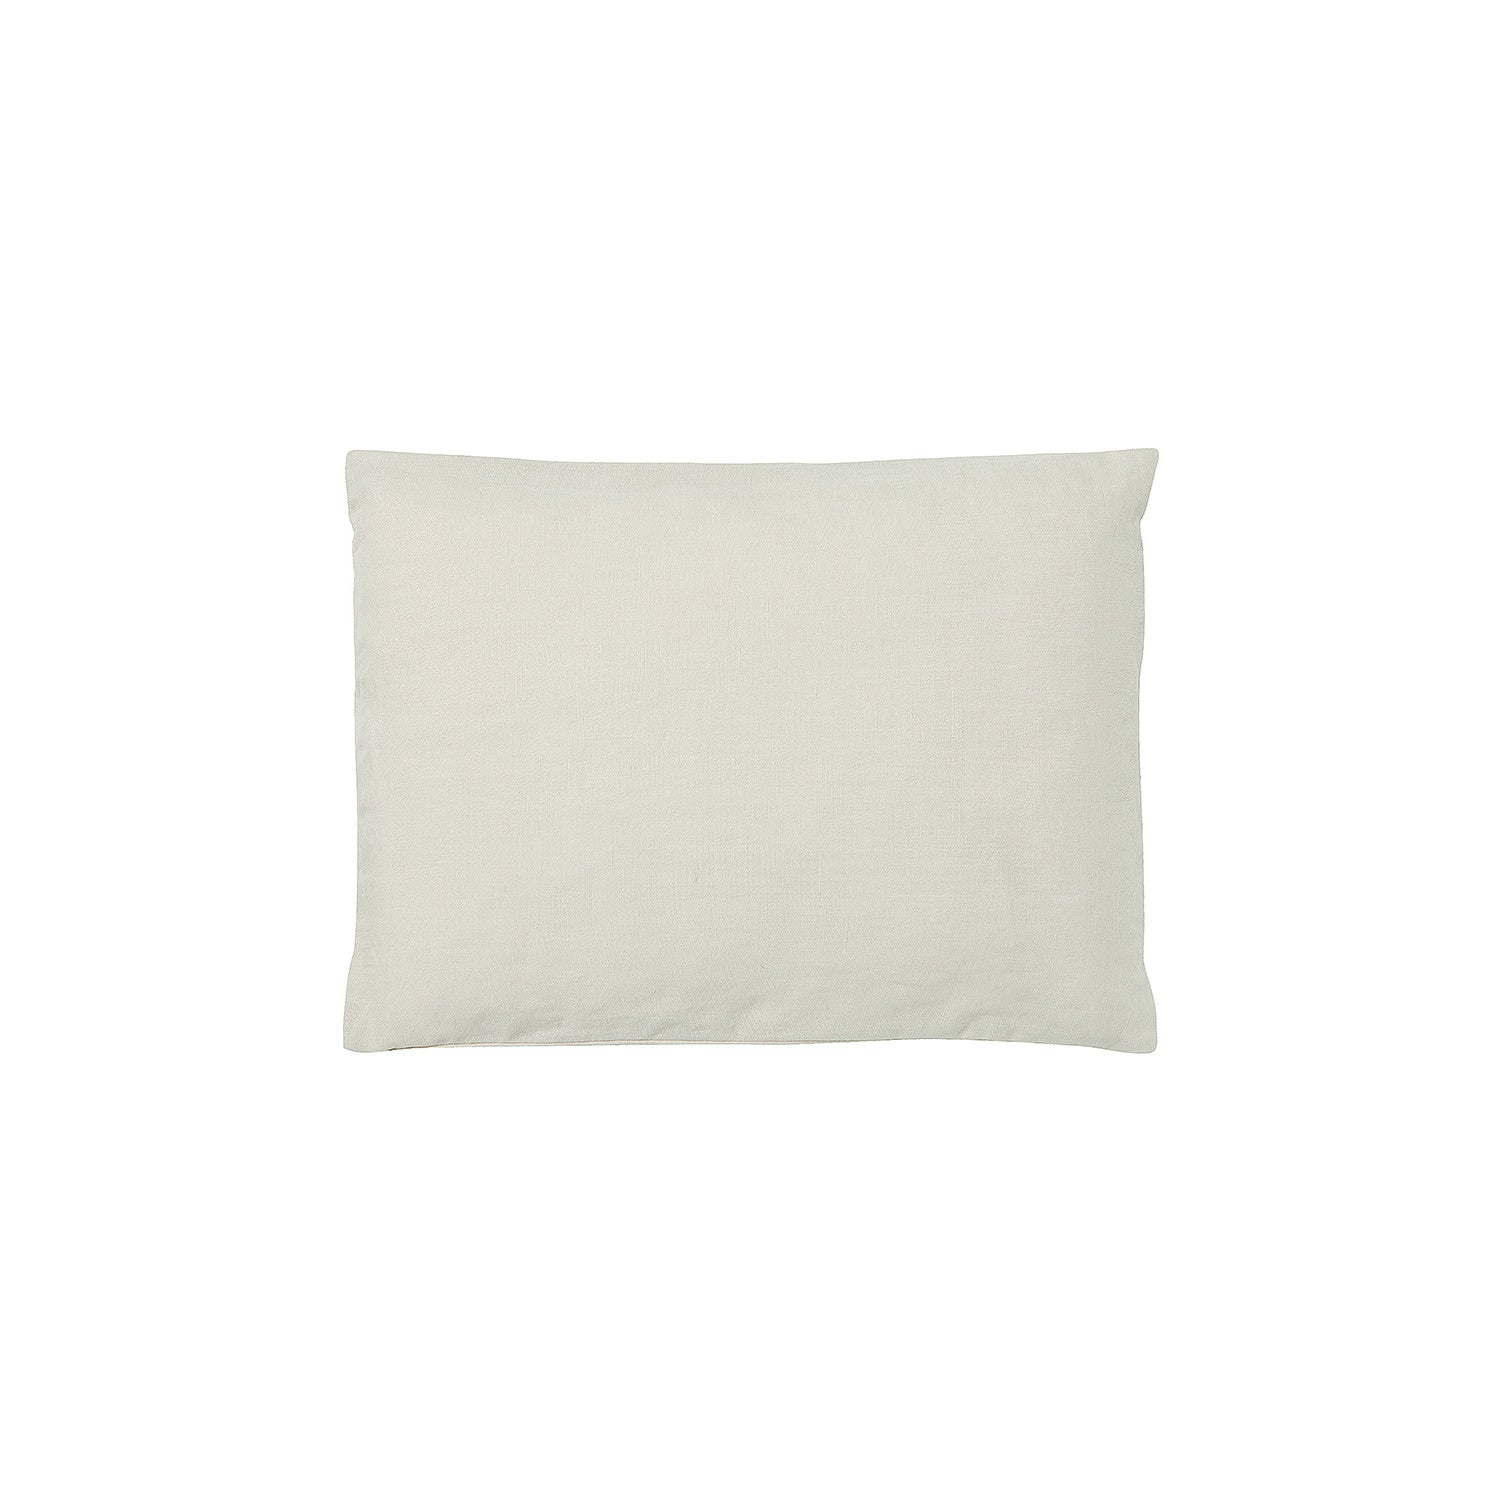 Bene Bene Ecru Soft Linen Pillow